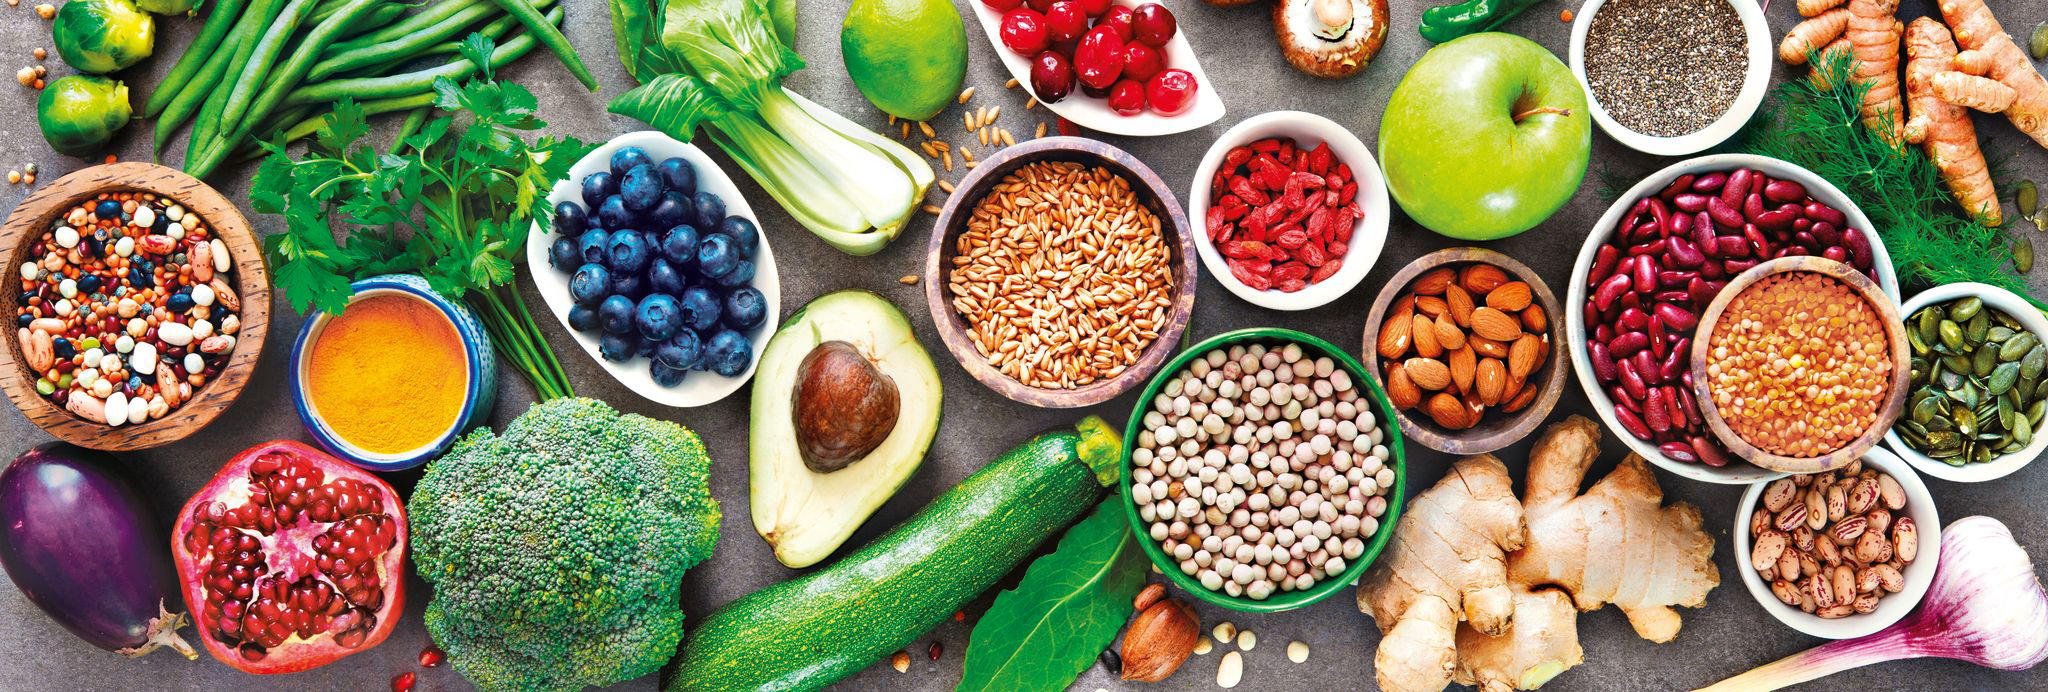 Healthy Veggie Food and Drink Jigsaw Puzzle